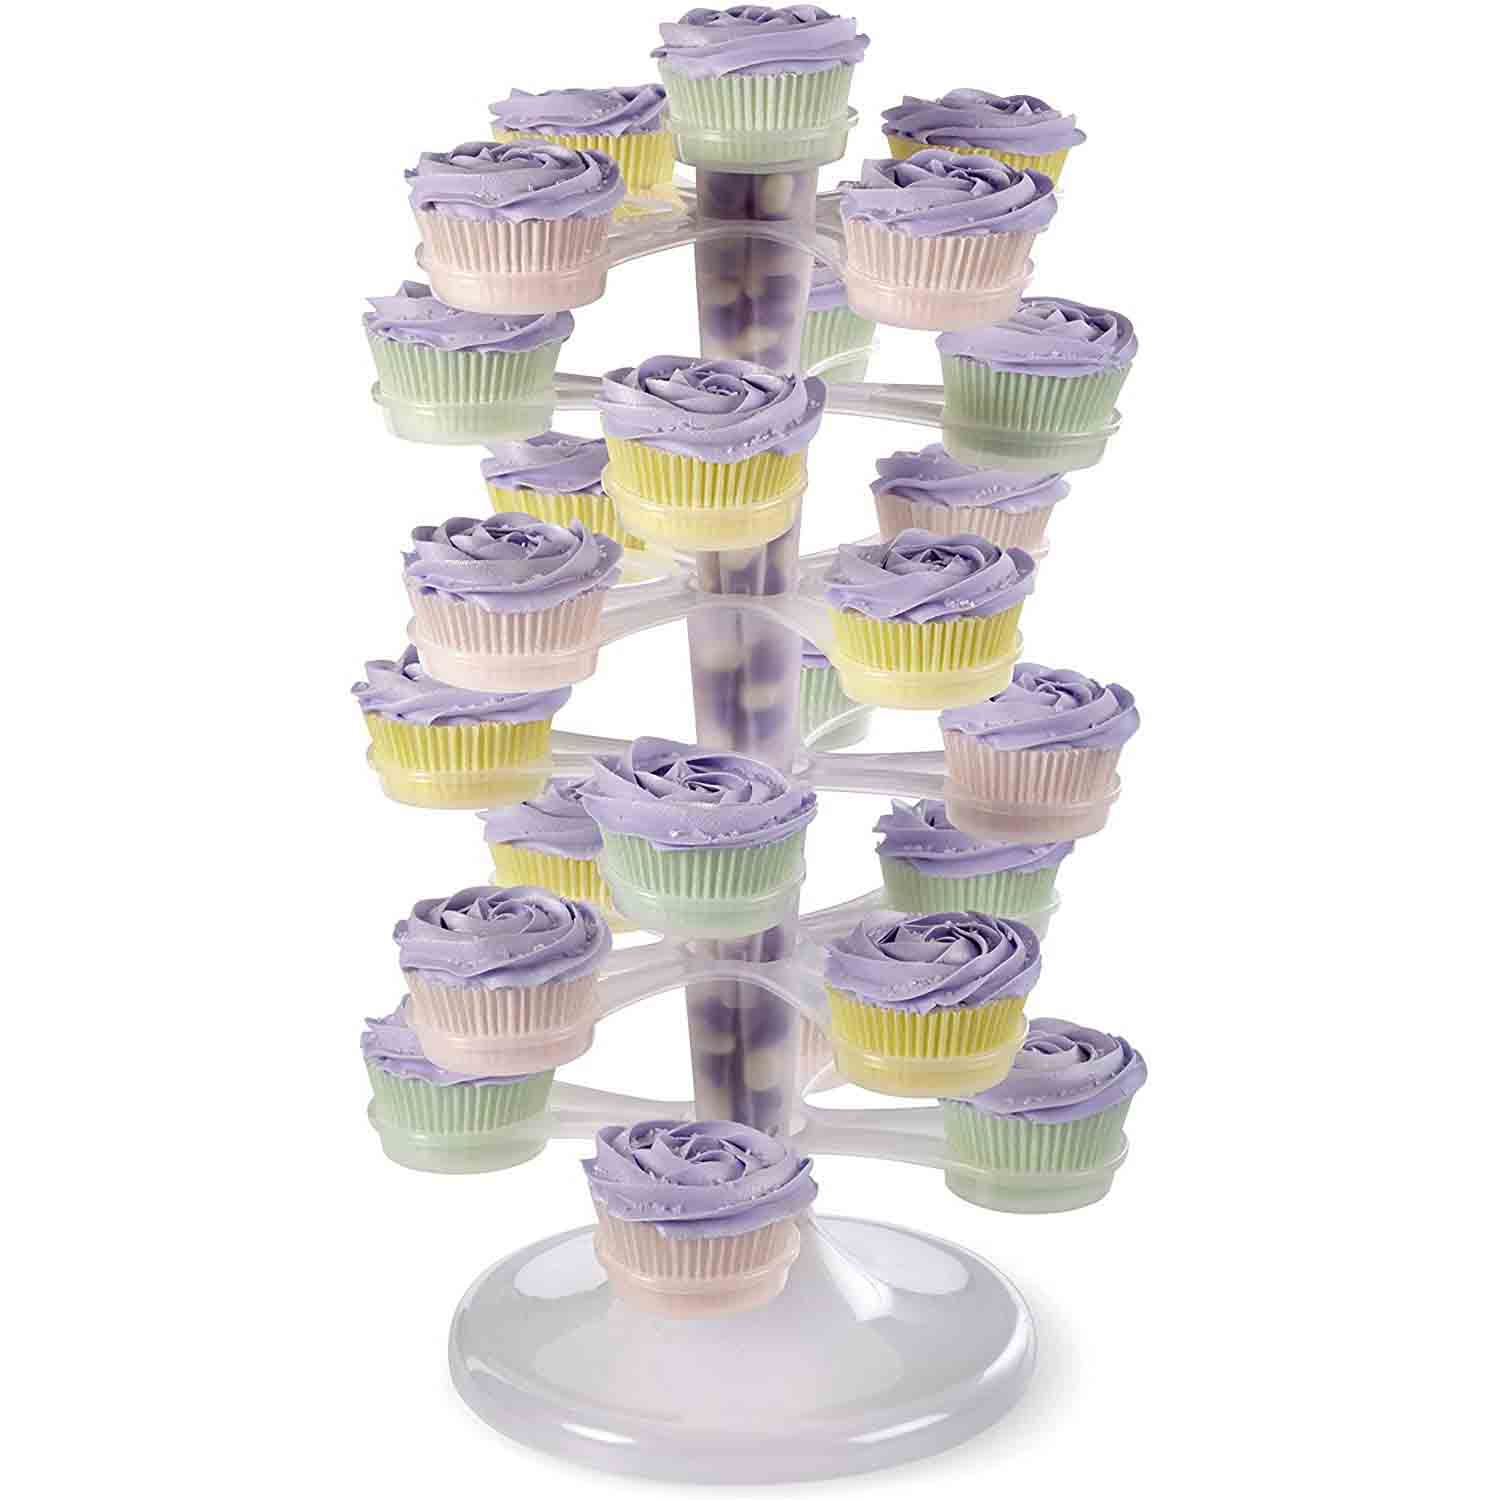 Adjustable Cupcake Tower